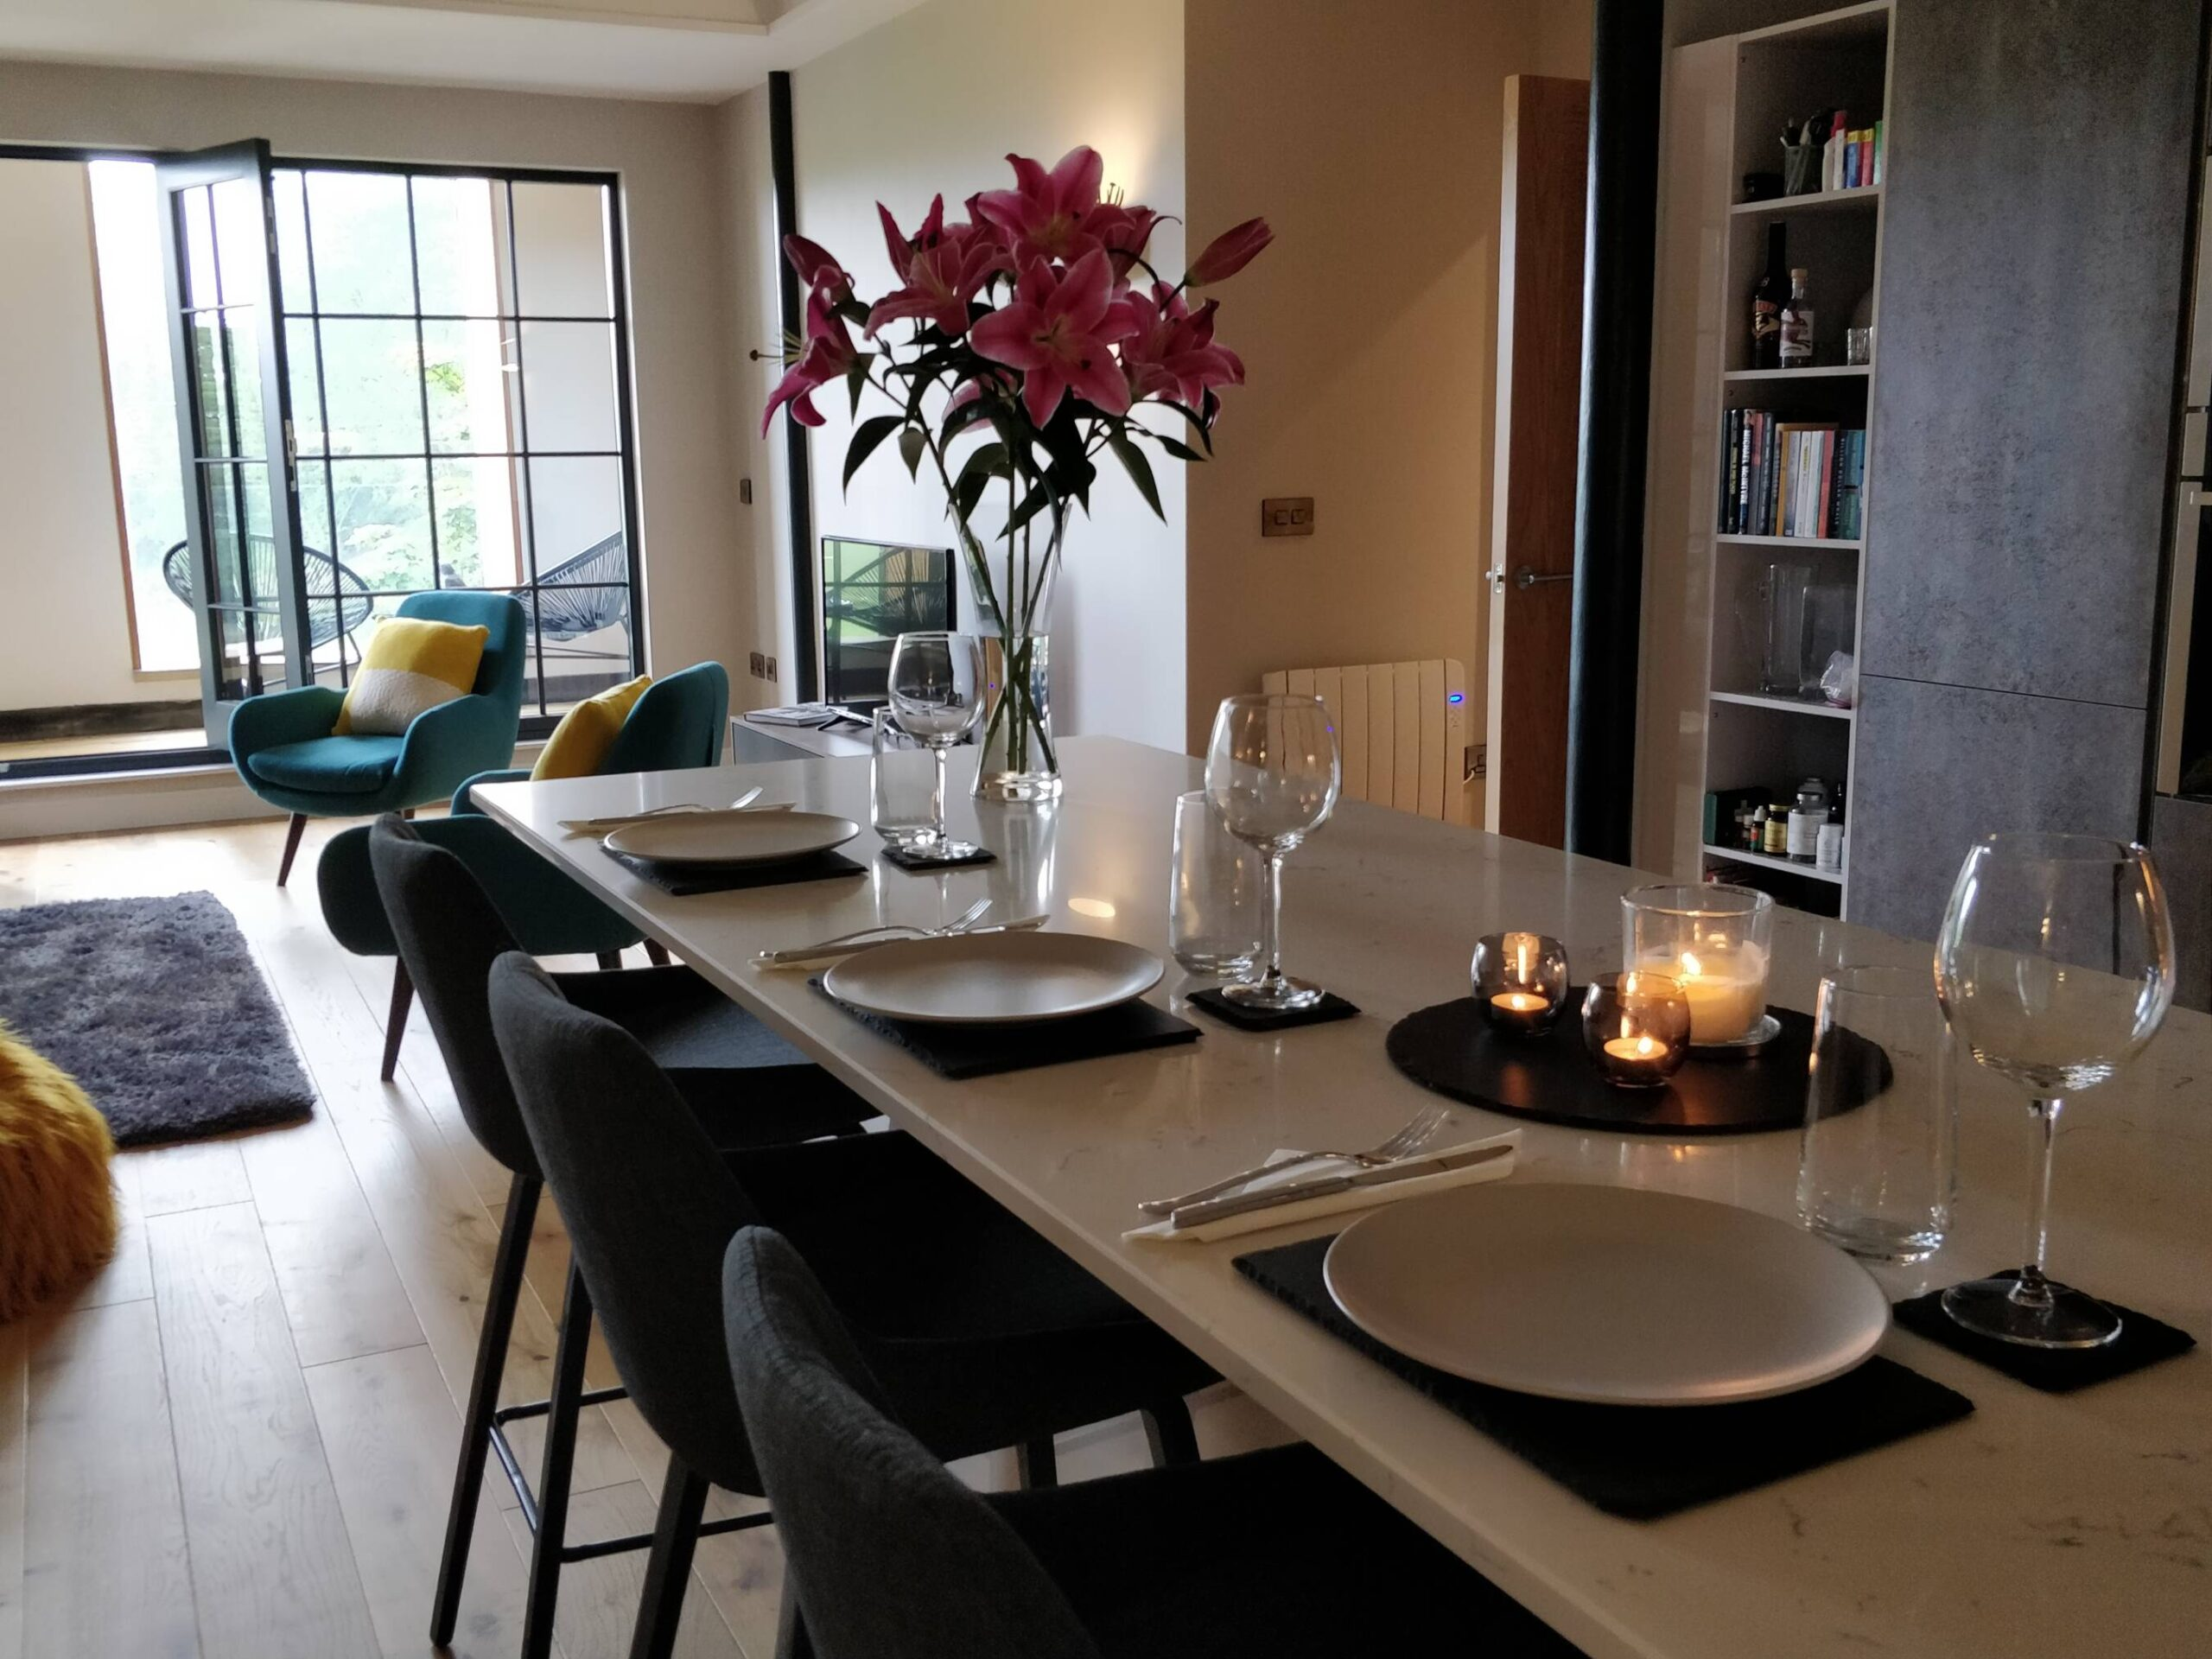 The kitchen and breakfast bar in Spindle Lilly, North Yorkshire Testimonial